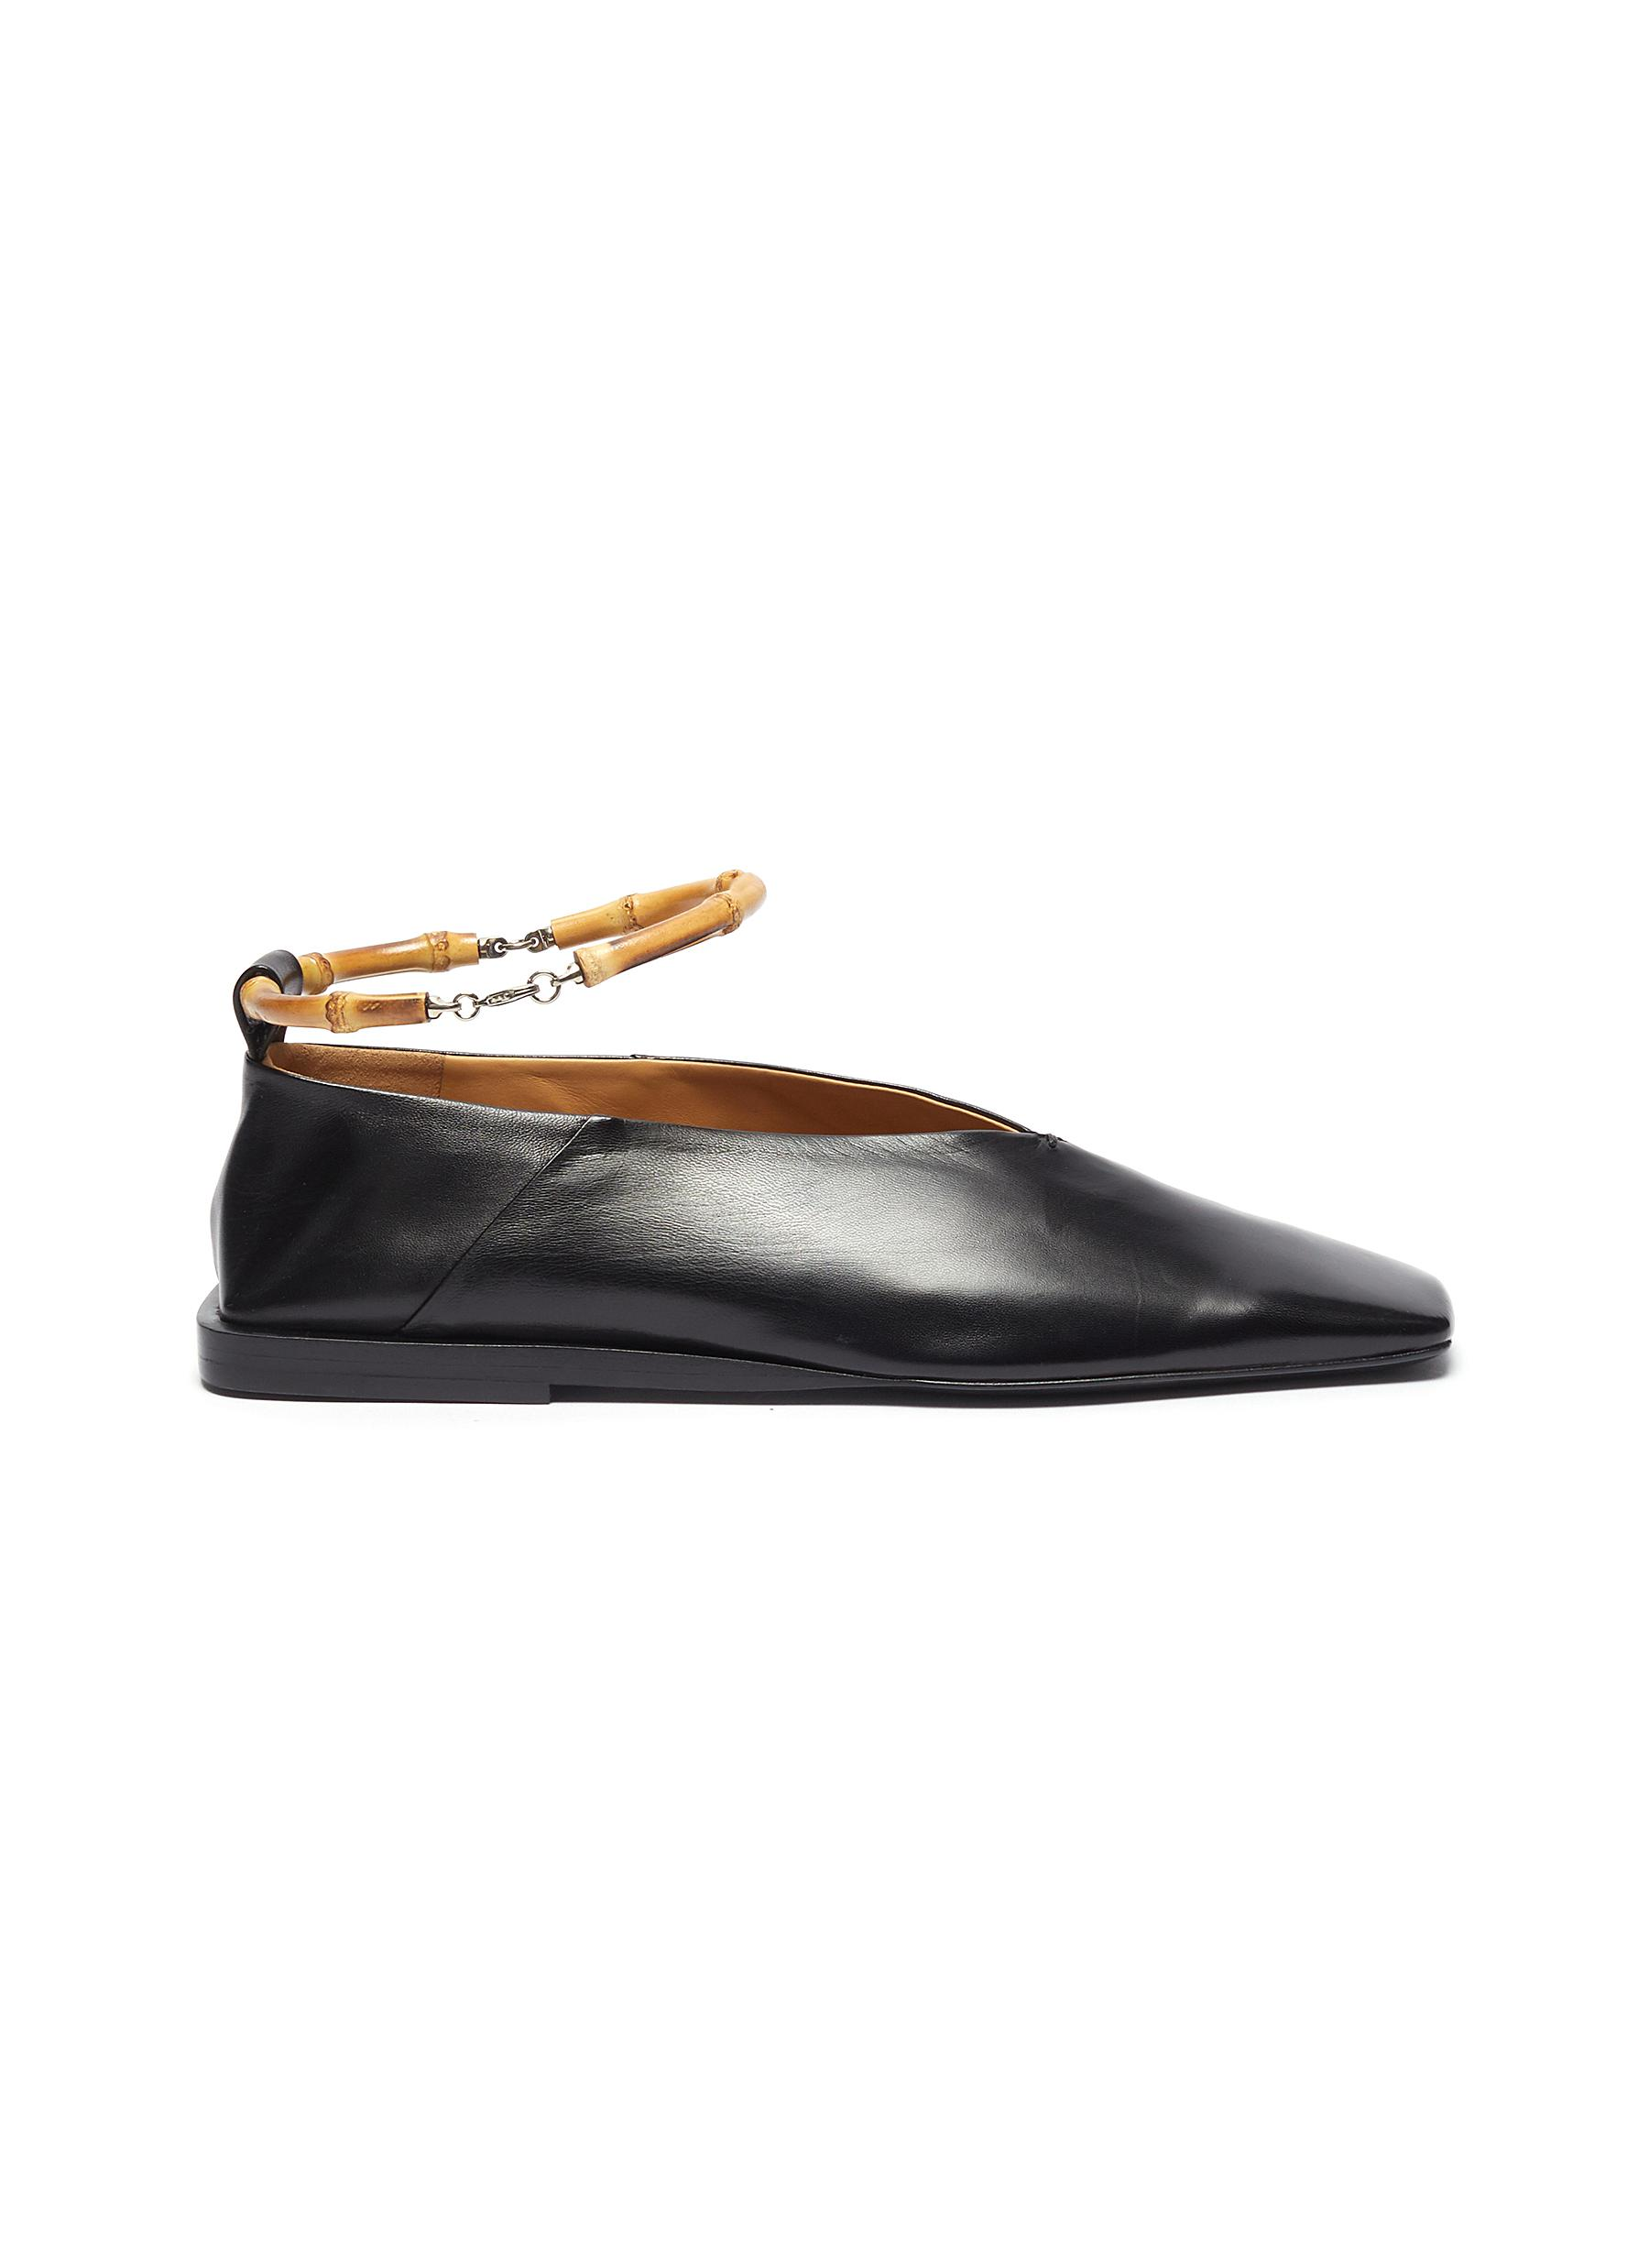 Jil Sander Flats Bamboo ankle ring leather ballerina flats